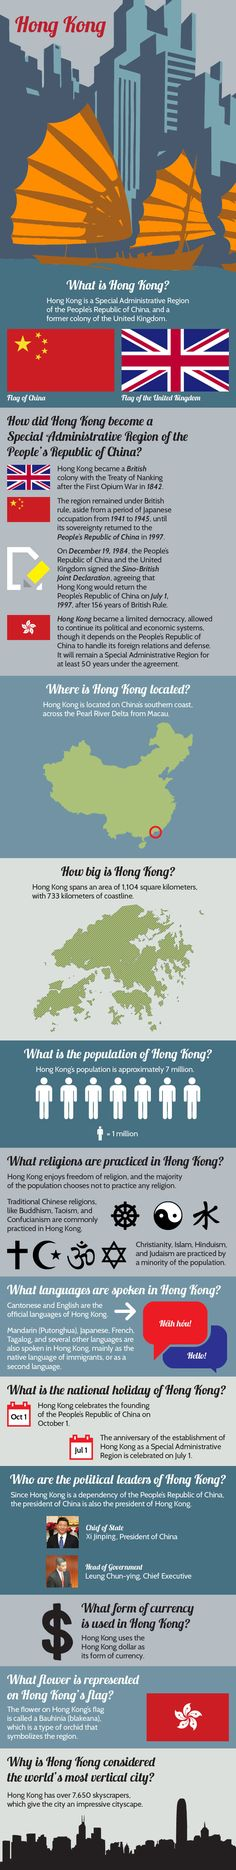 Infographic Of Hong Kong Facts